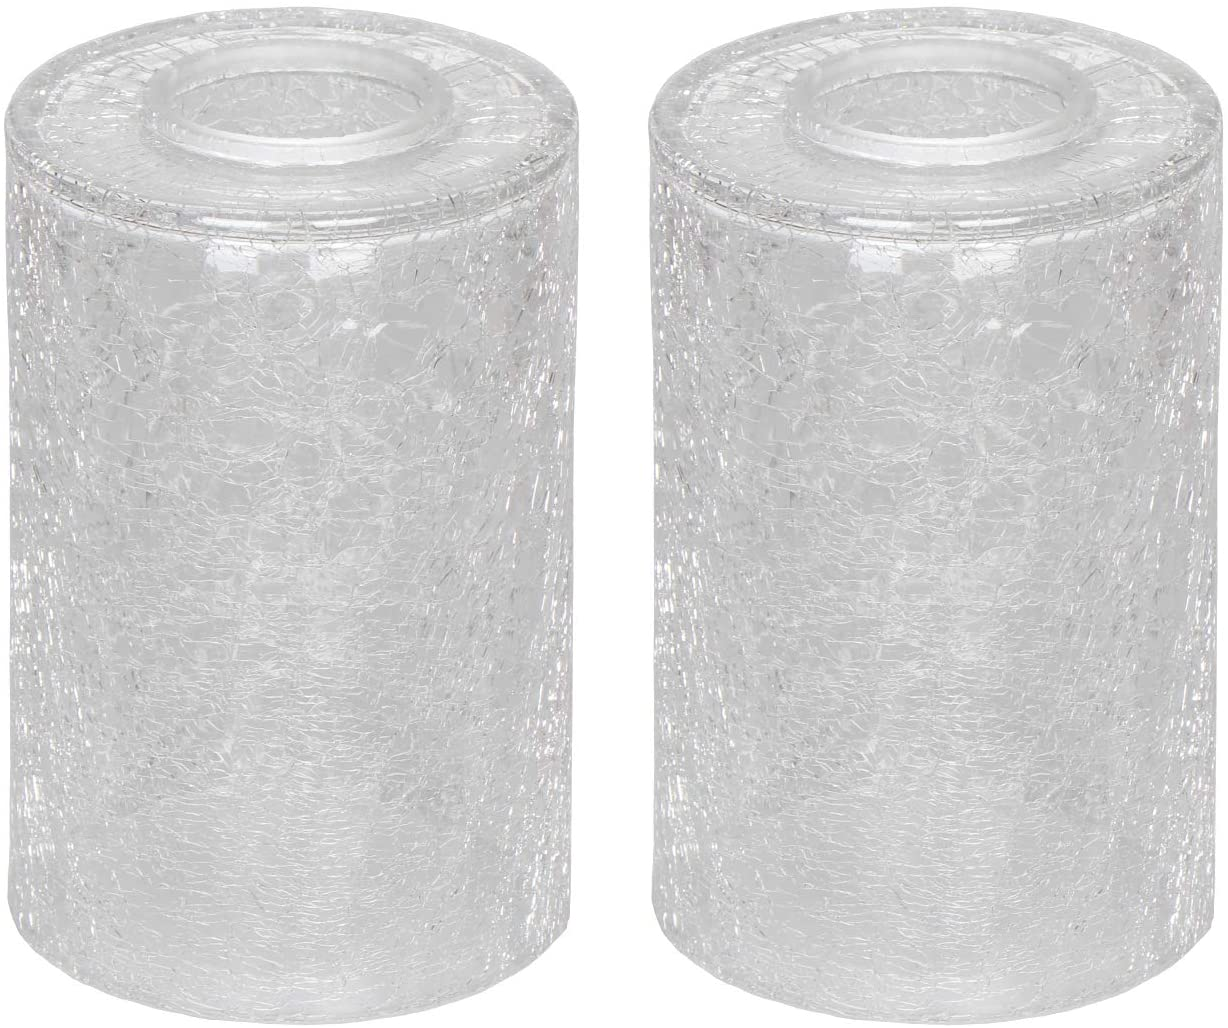 XIDING 2 PACK Clear Glass Lamp Shade with Crack Finish, Cracked Cylinder Glass Shade, Straight Cylinder Glass Lamp Shade Replacement, Perfect DIY Glass Accessories